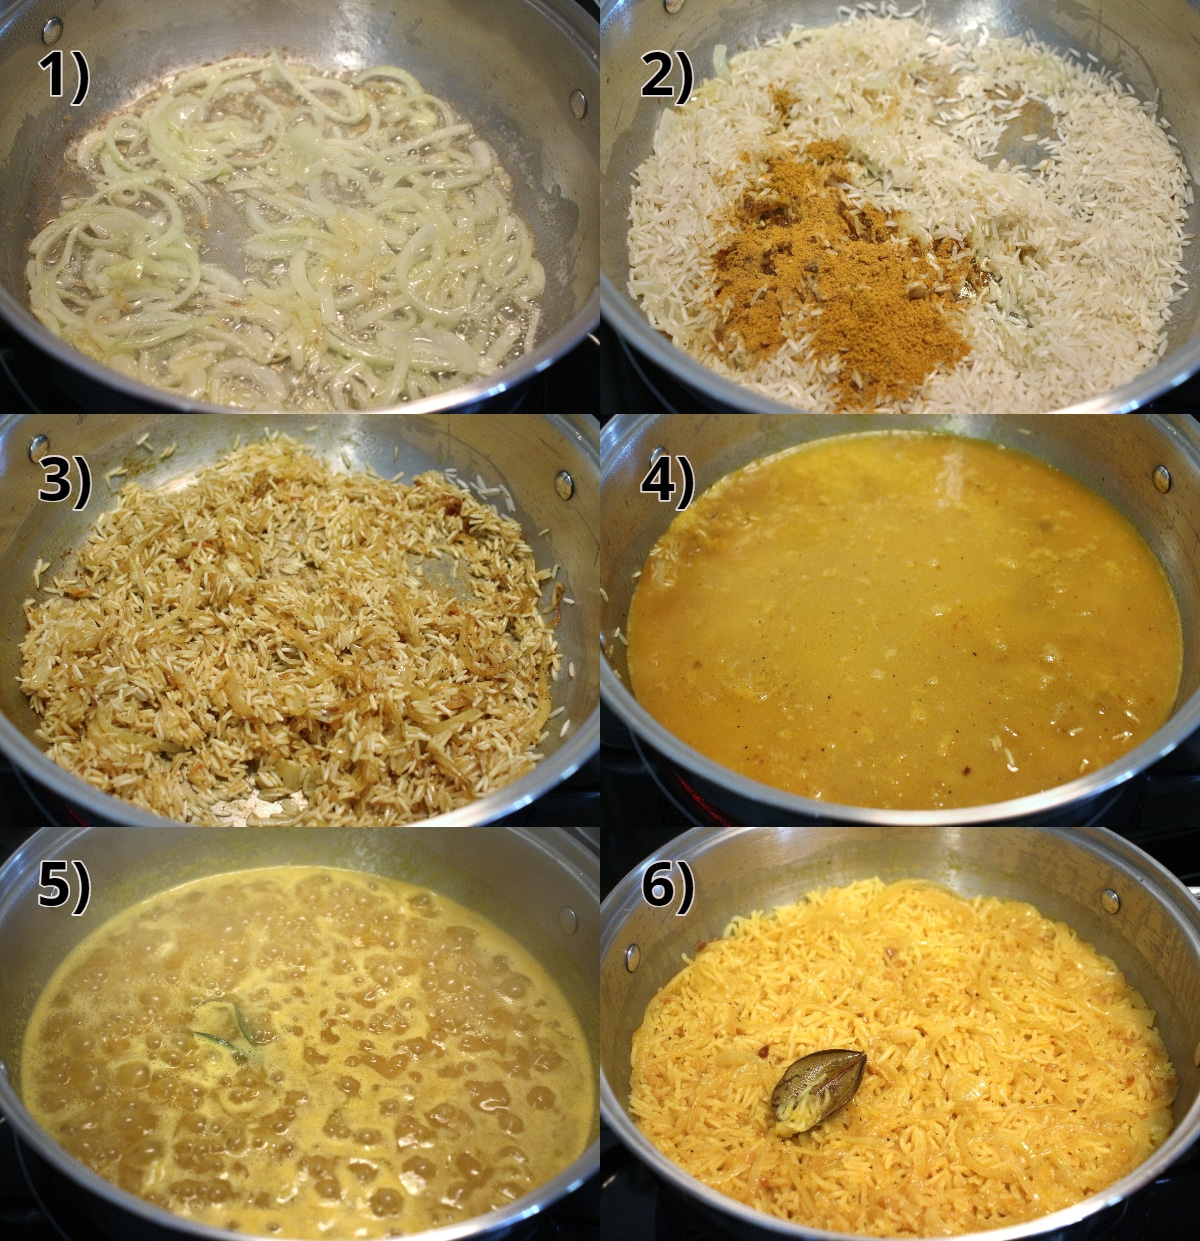 Step by step photos of how to make Caribbean curried rice pilaf with citrus